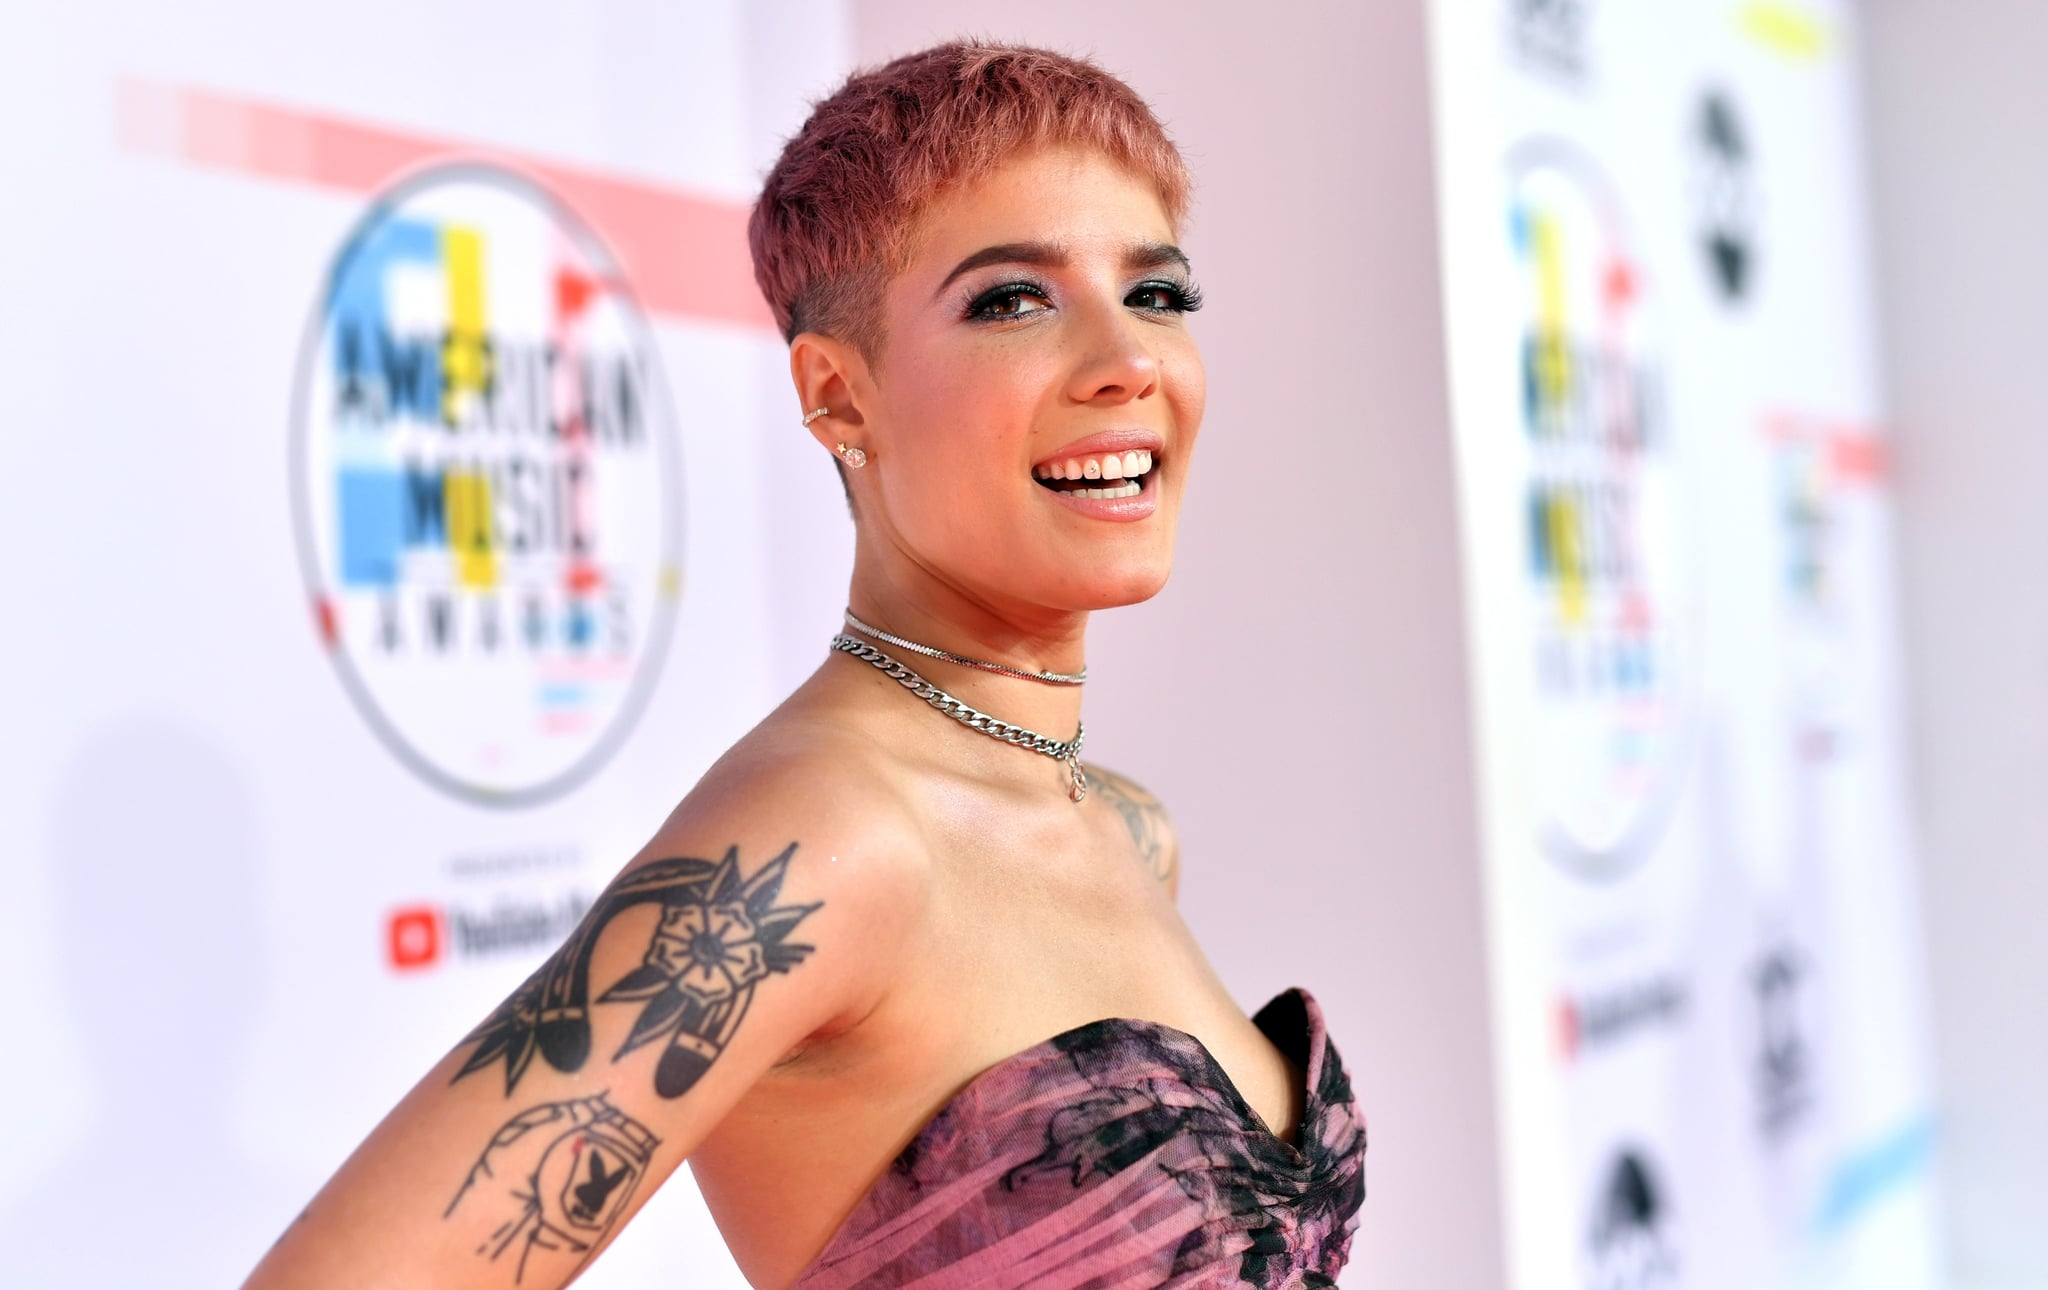 LOS ANGELES, CA - OCTOBER 09: Halsey attends the 2018 American Music Awards at Microsoft Theatre on October 9, 2018 in Los Angeles, California.  (Photo by Emma McIntyre/Getty Images For dcp)